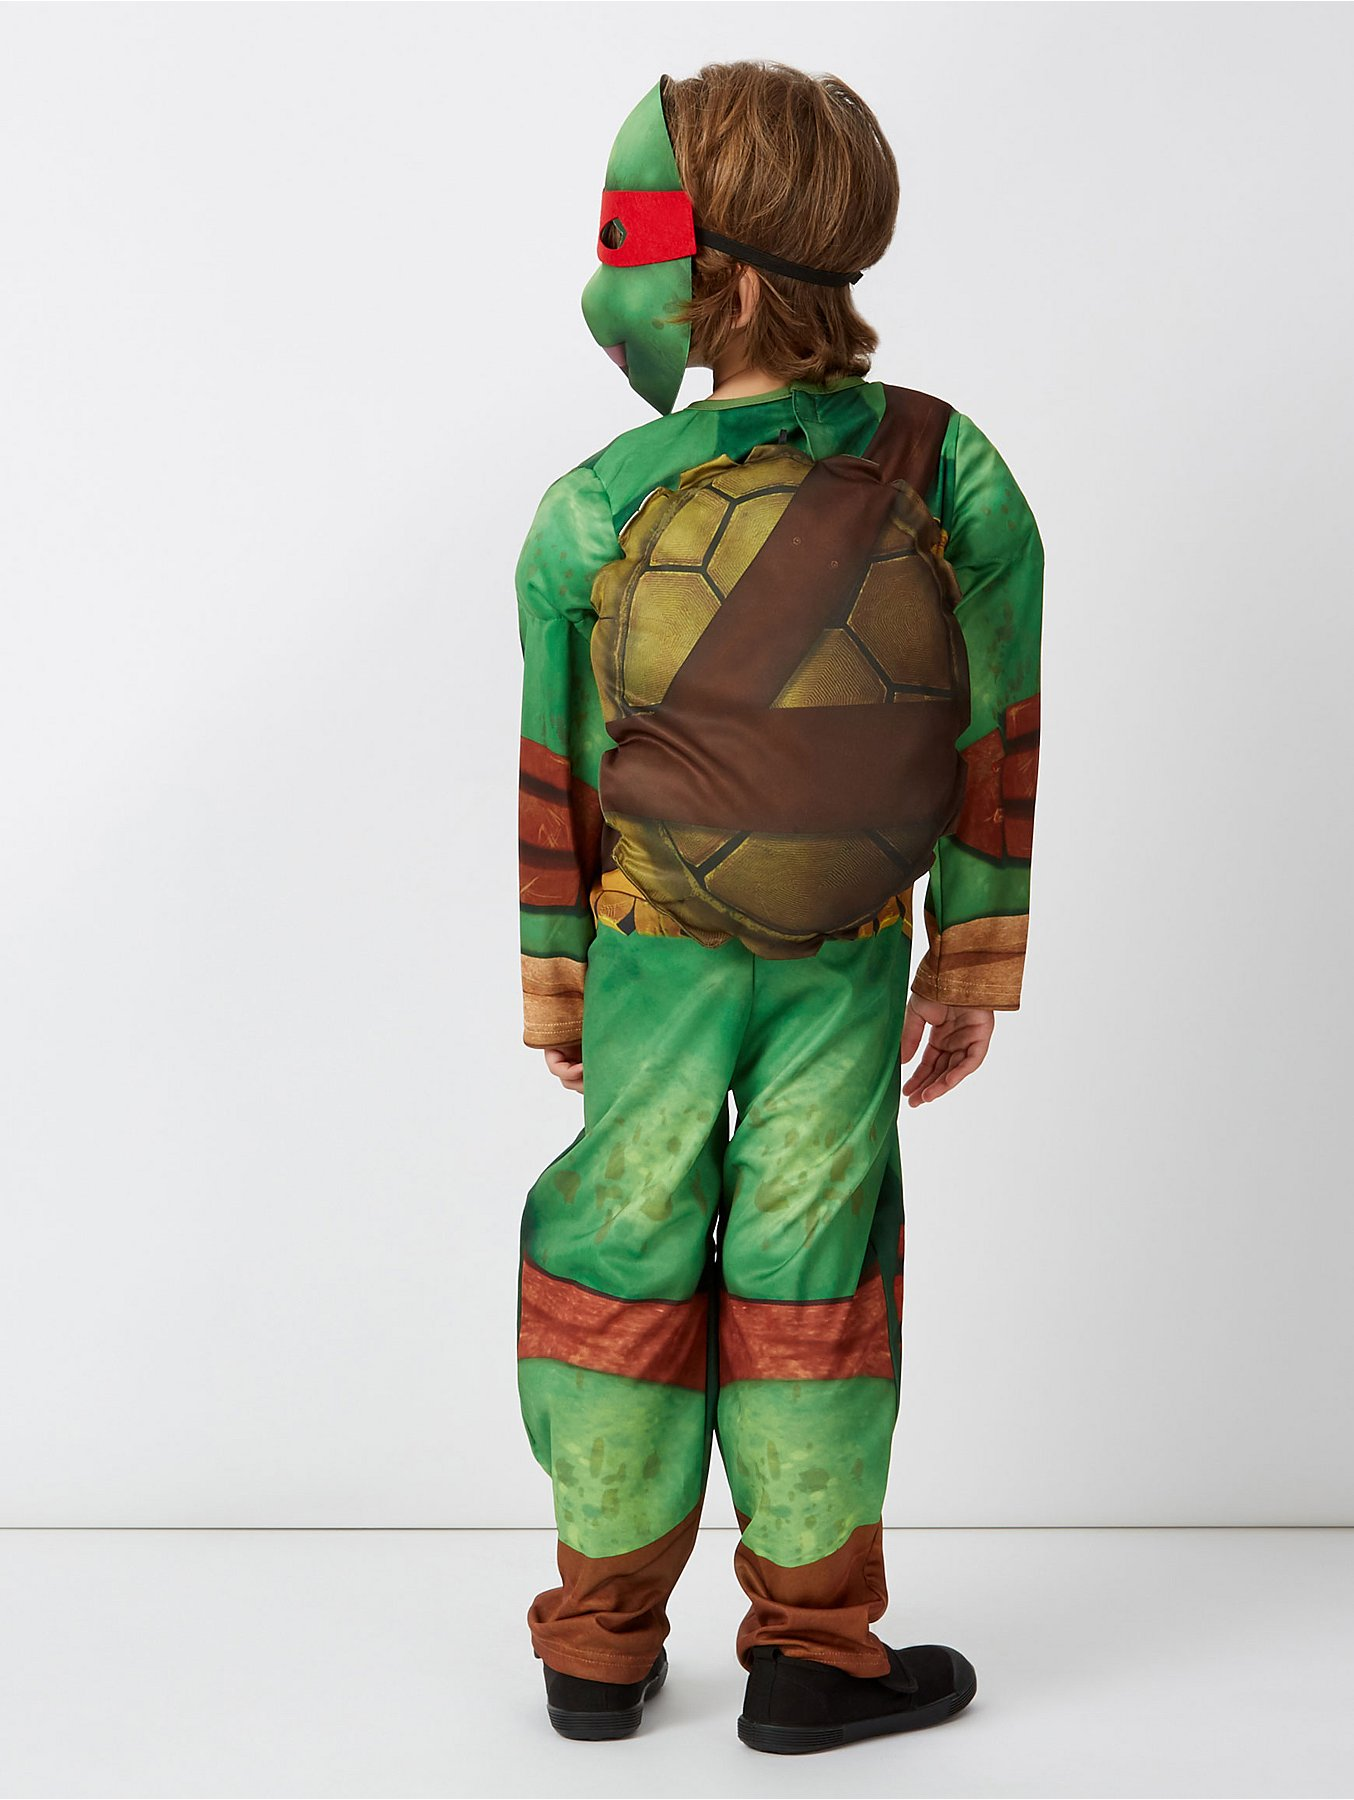 cfec564aacf Teenage Mutant Ninja Turtles Fancy Dress Costume With Sound. Reset